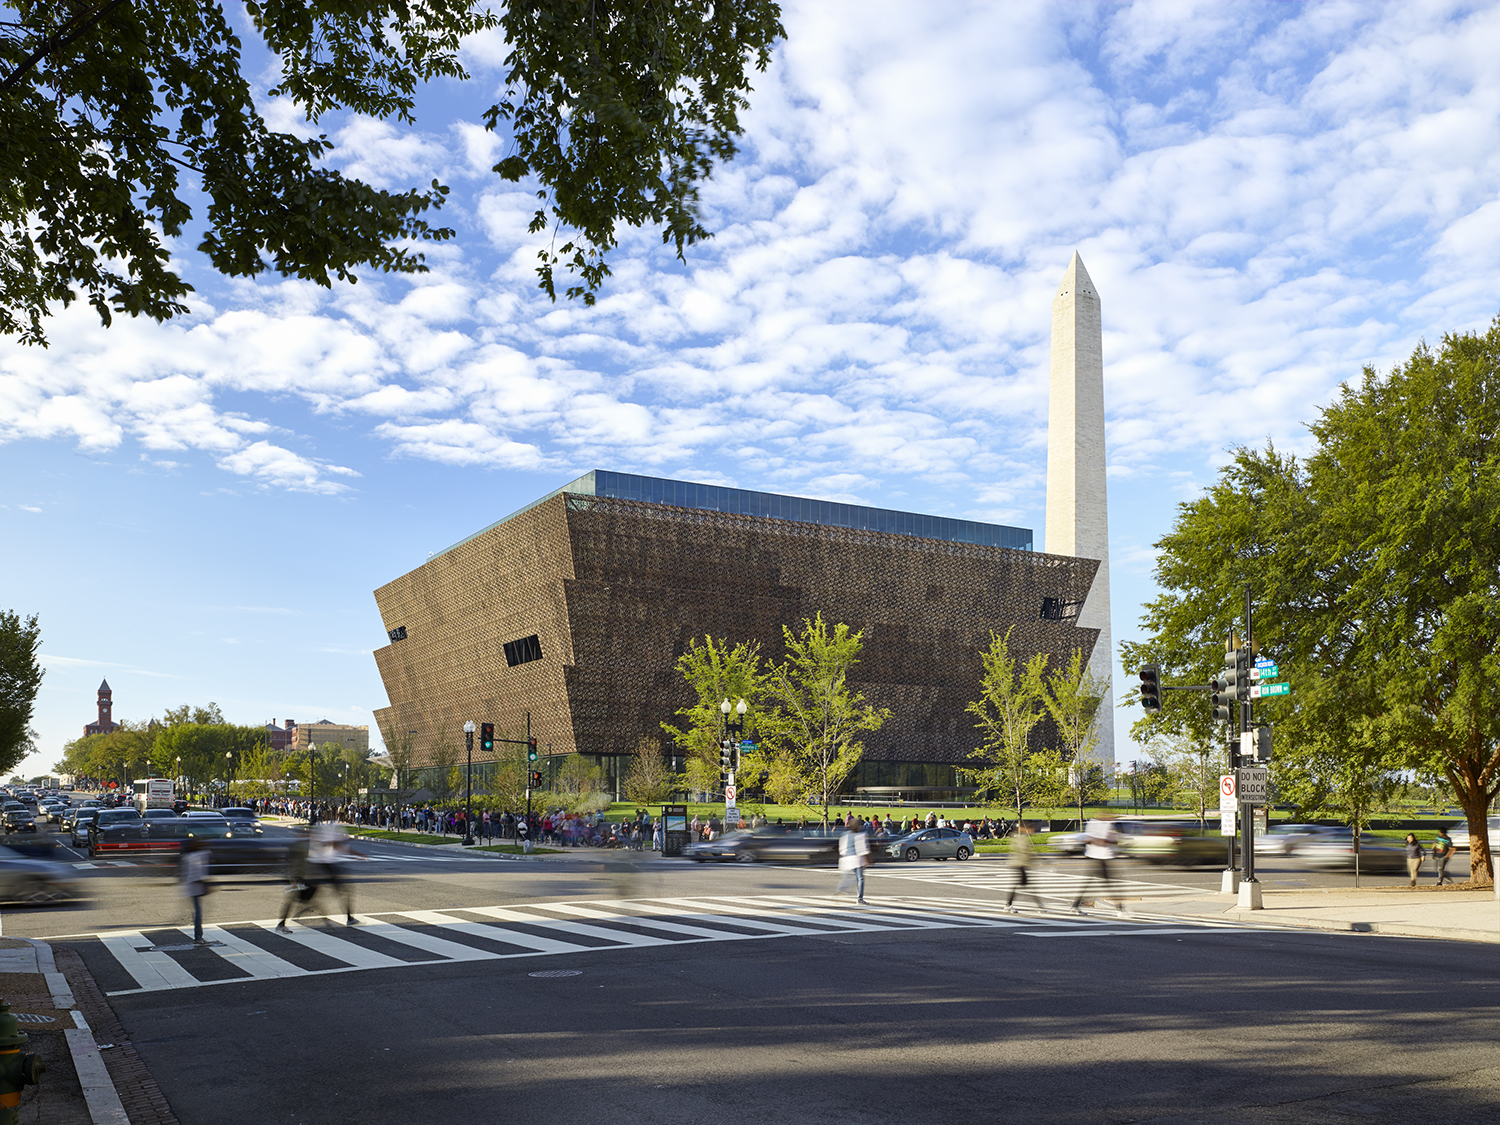 Smithsonian National Museum of African American History & Culture by Freelon Adjaye Bond / Smithgroup and Gustafson Guthrie Nichol. Credit: Alan Karchmer; rights held by The Smithsonian Institution.